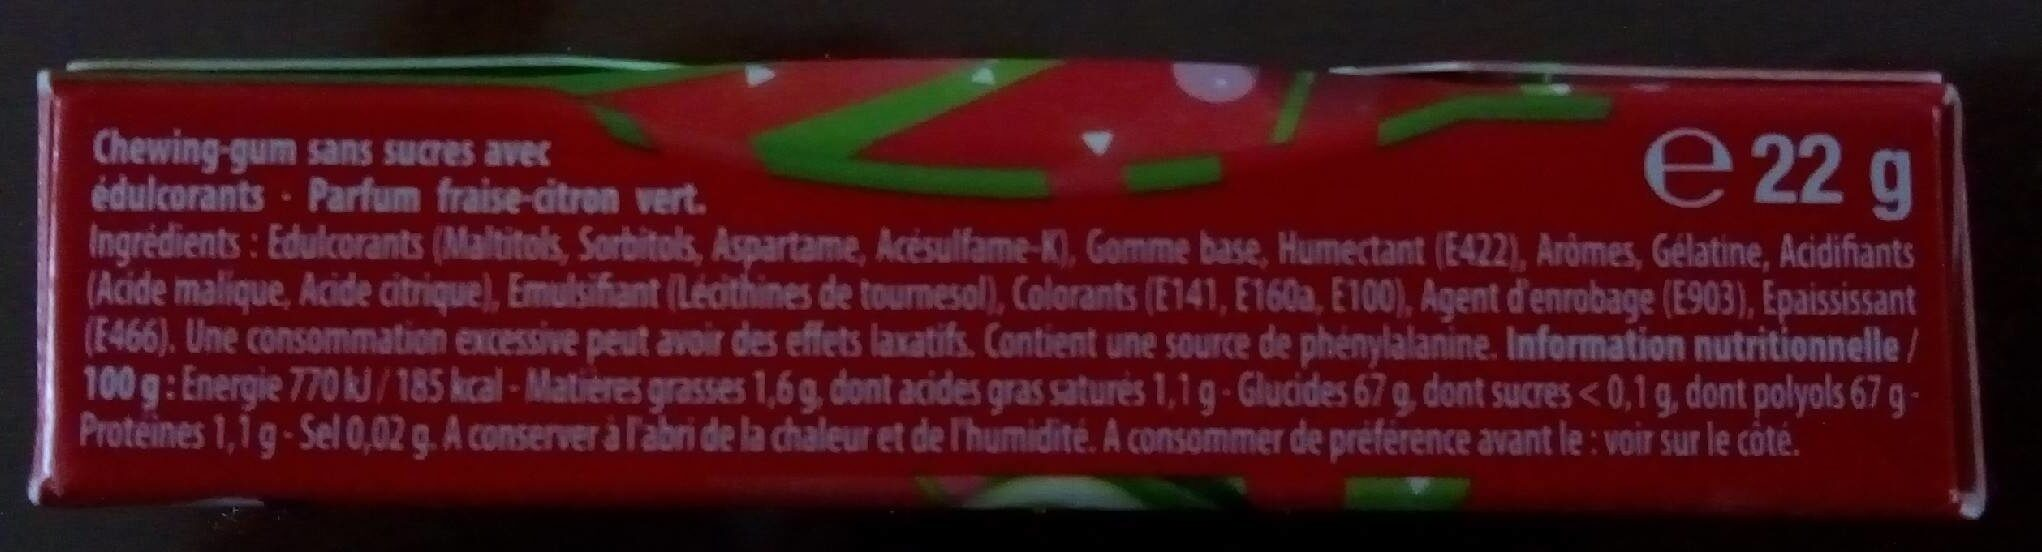 Chewing-gum - Informations nutritionnelles - fr